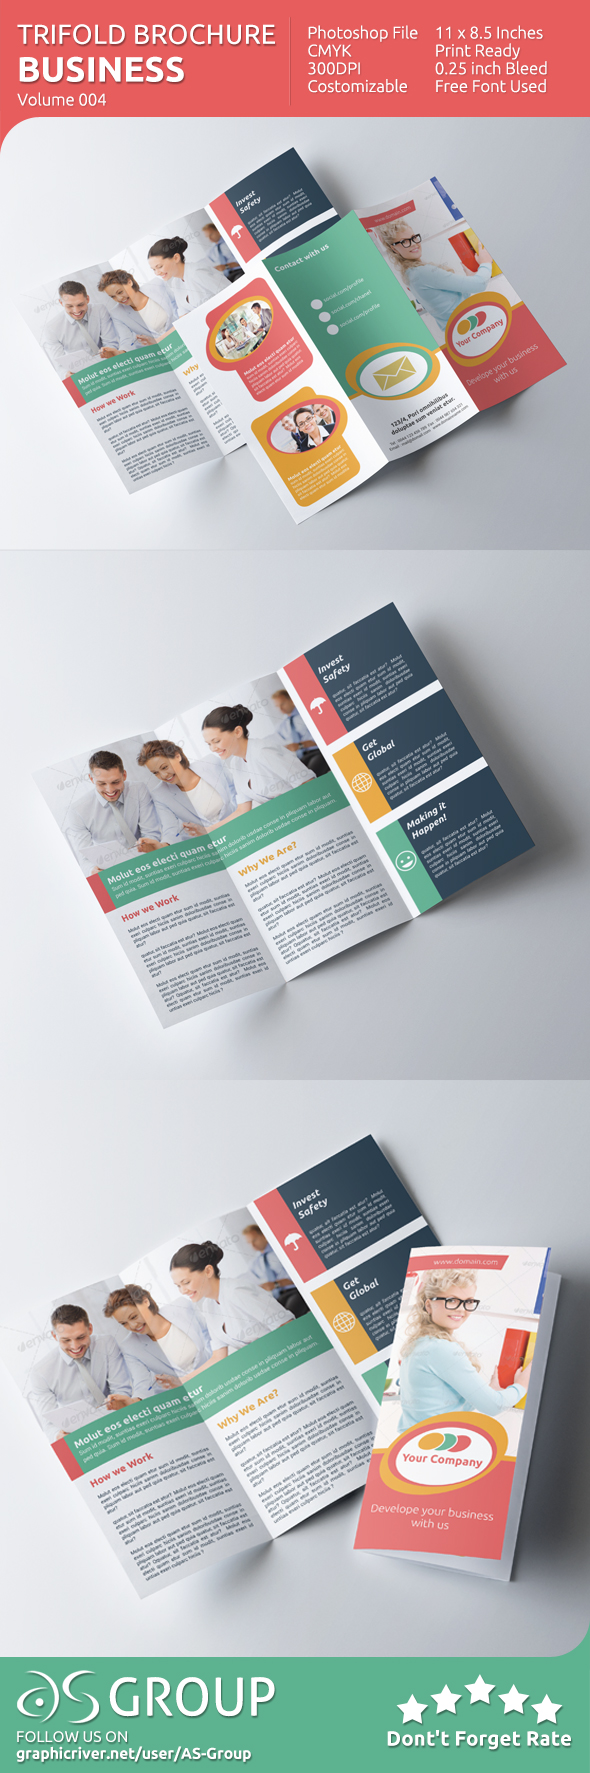 business_tri-fold-brochure-v004-preview